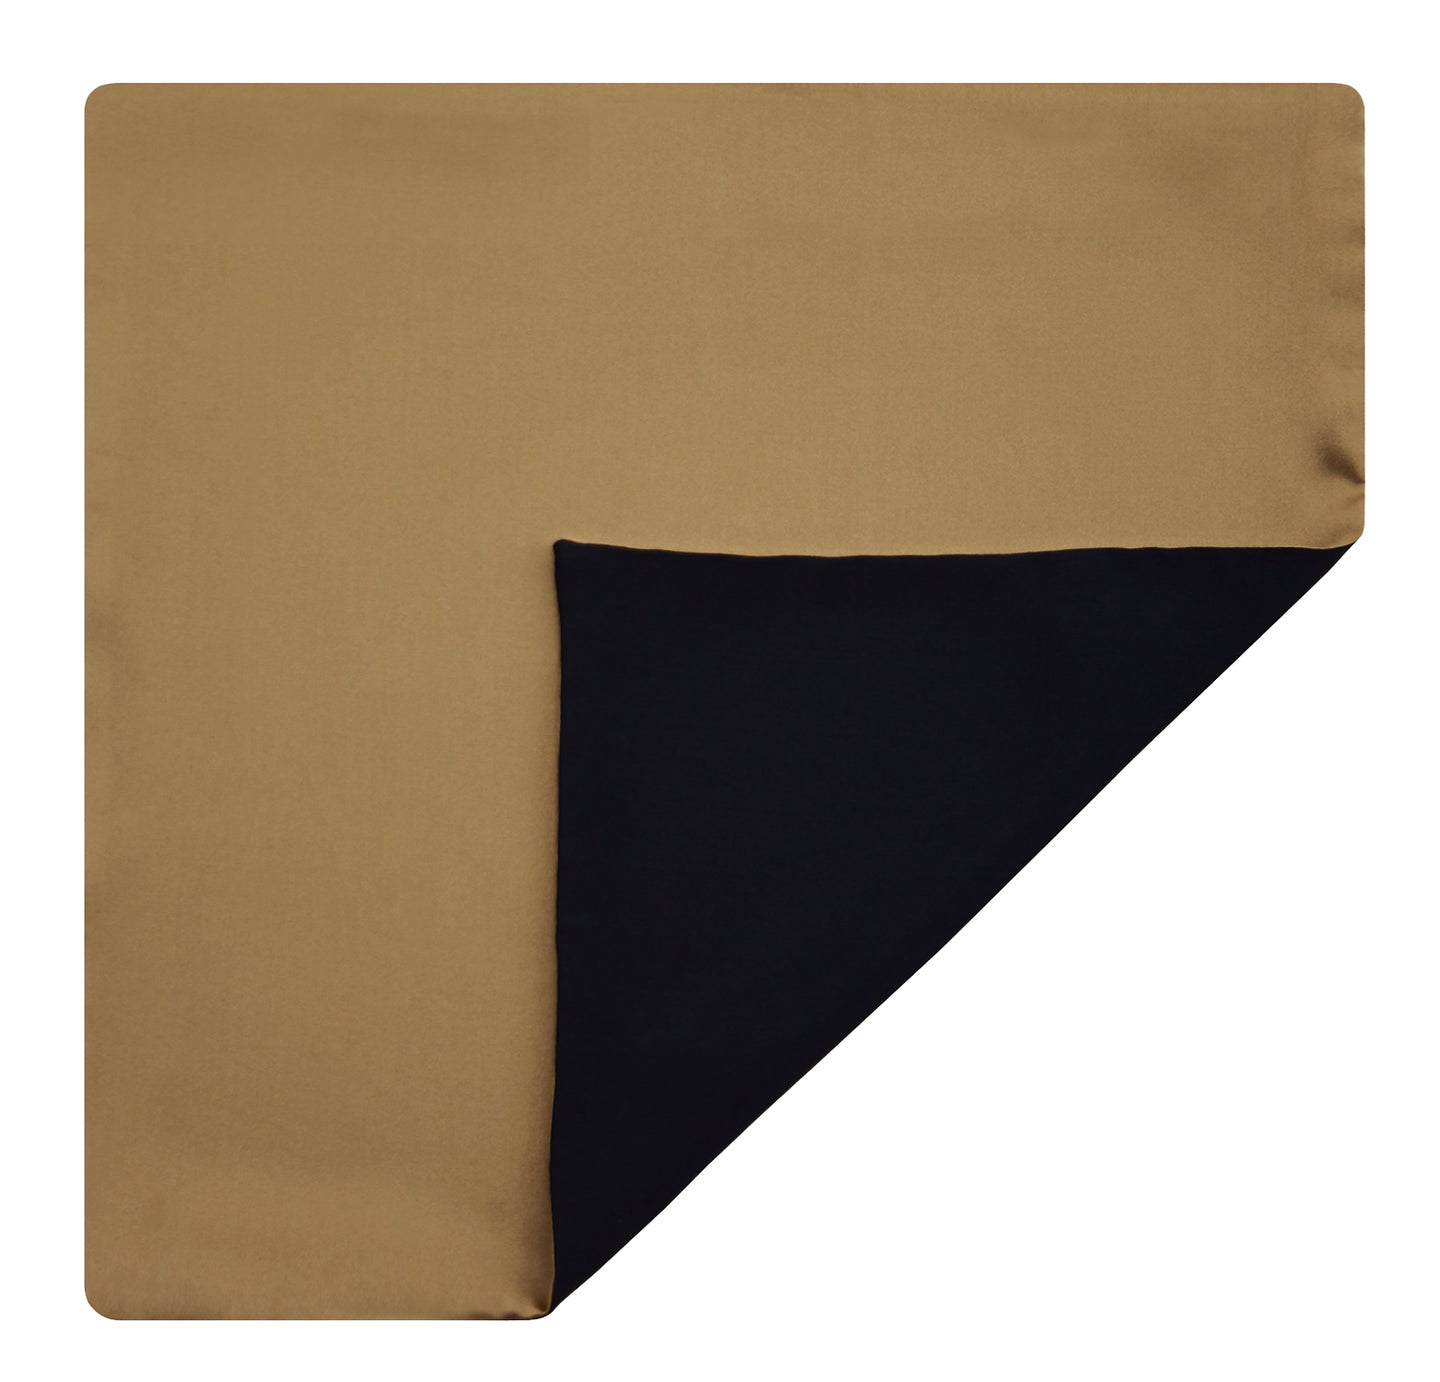 Mimi Fong Reversible Silk Pocket Square in Gold & Black